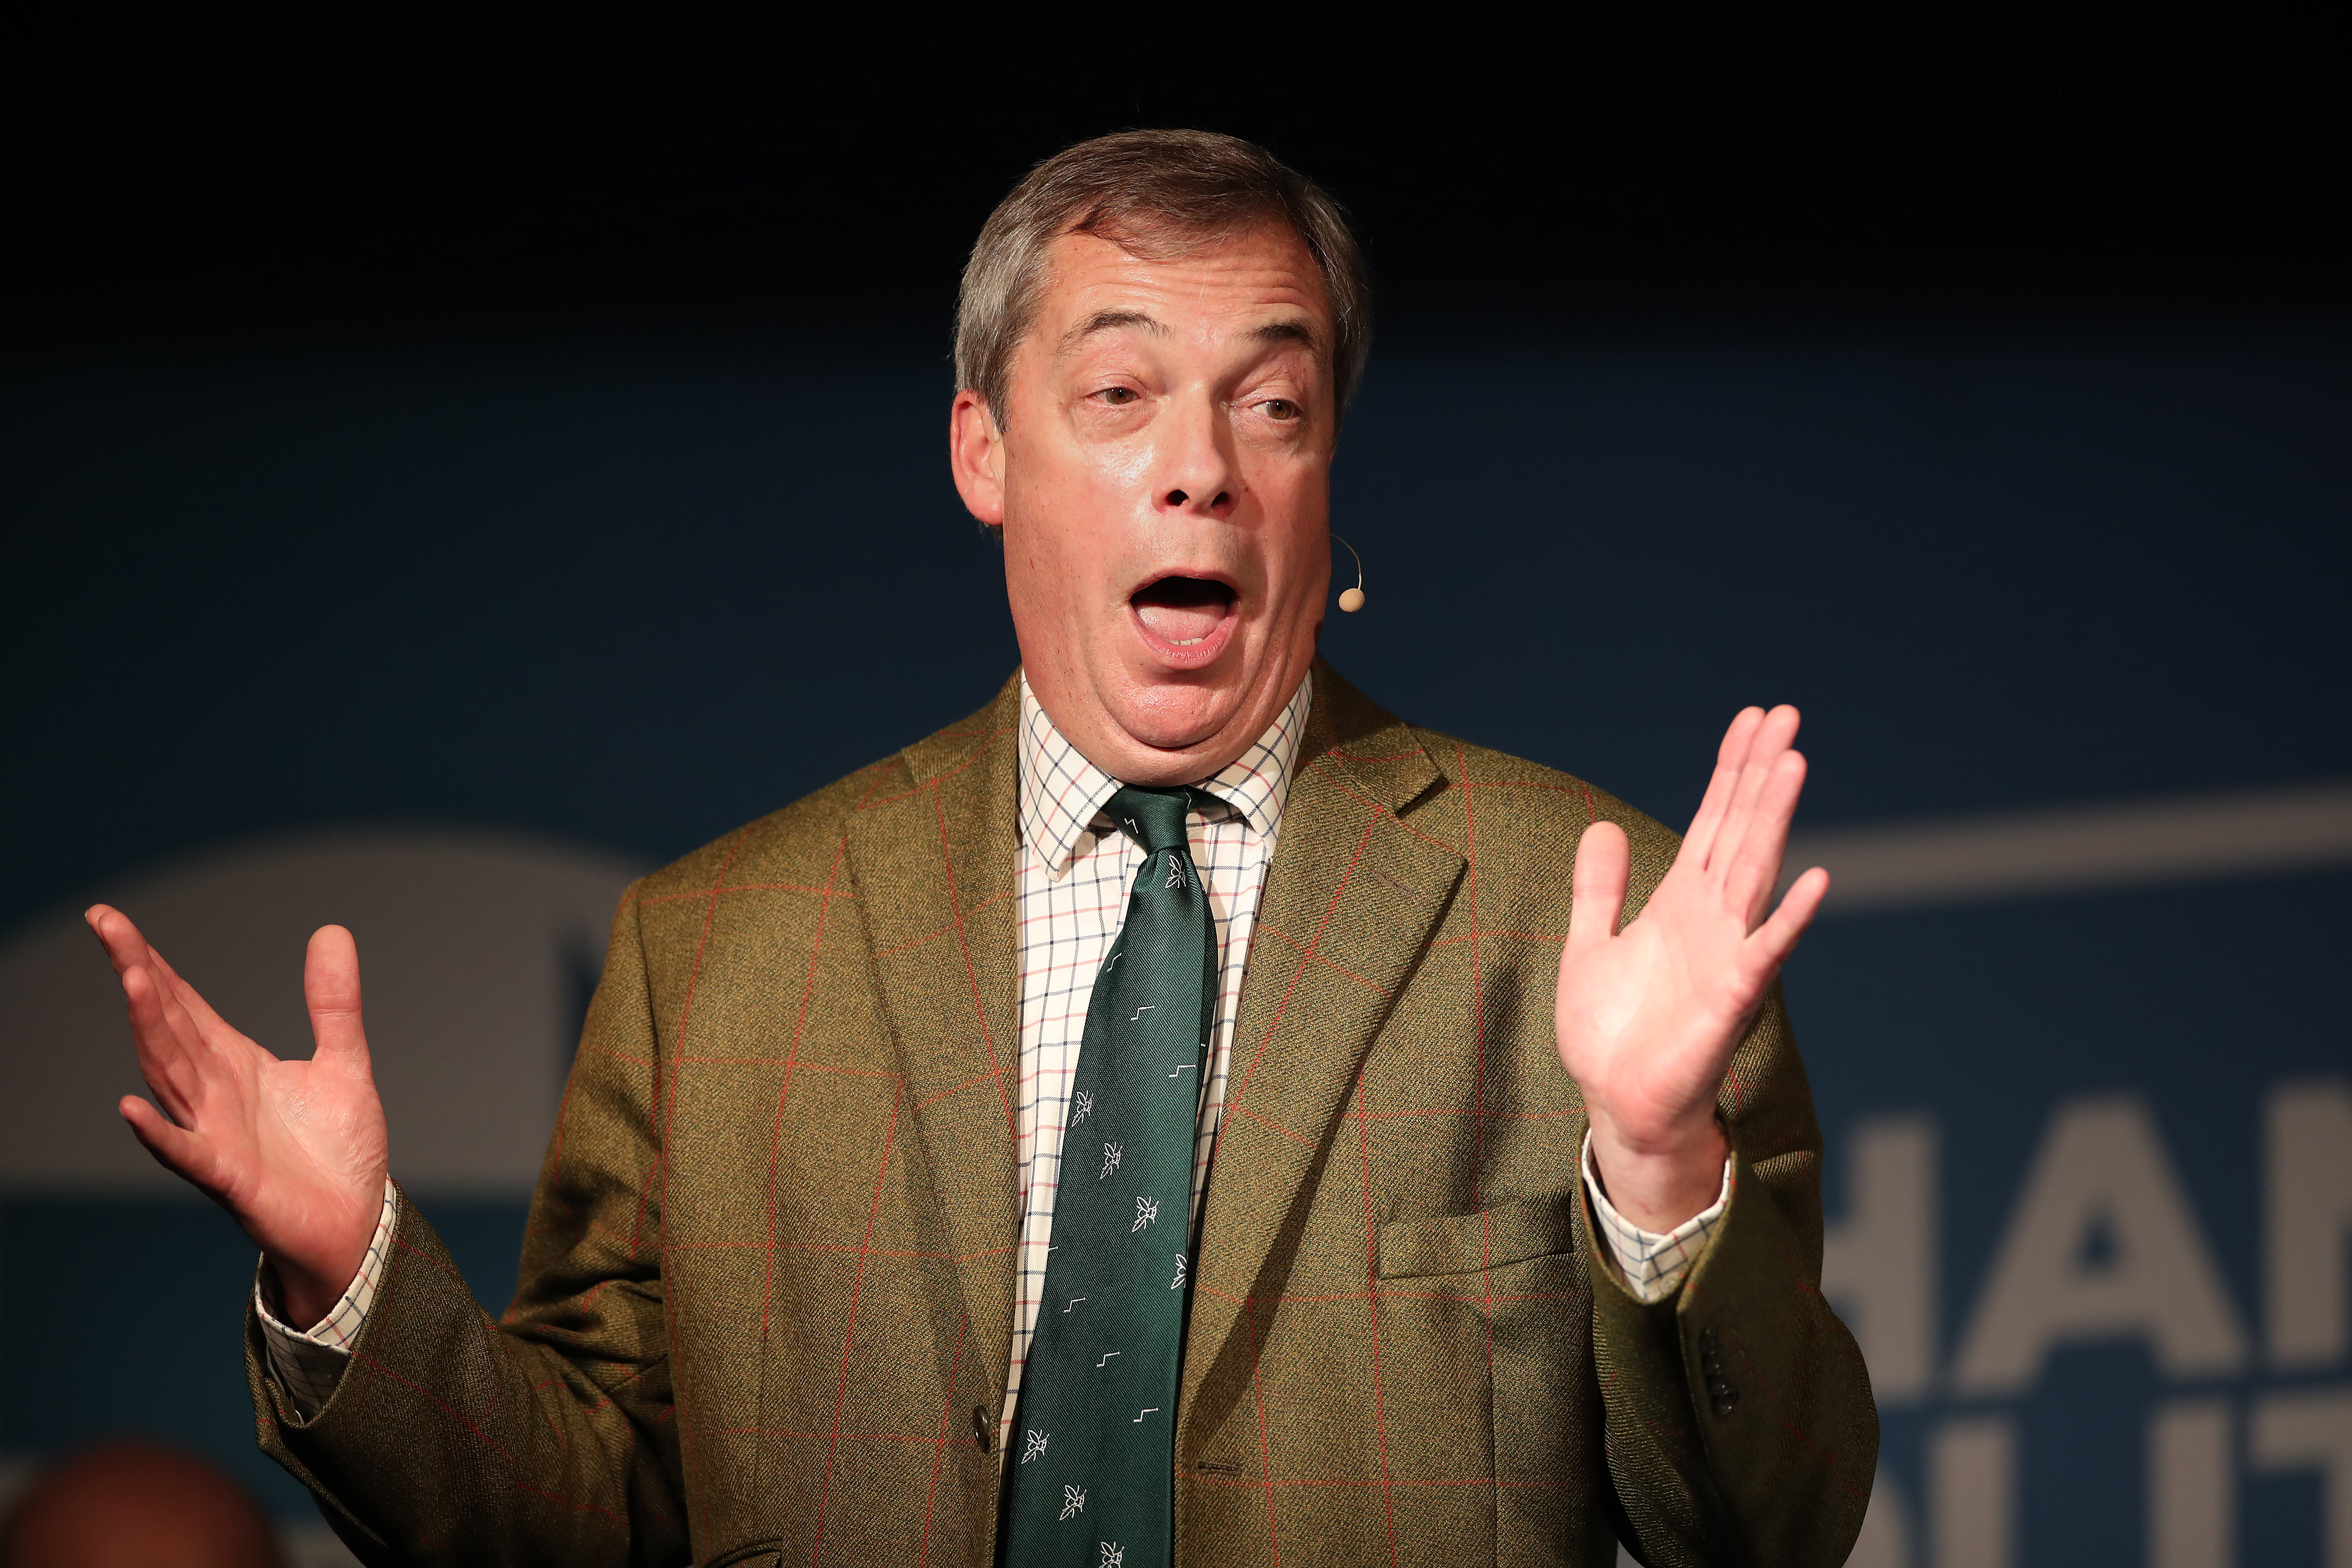 Brexit Party leader Nigel Farage speaking at an event in Barnsley while on the General Election campaign trail.